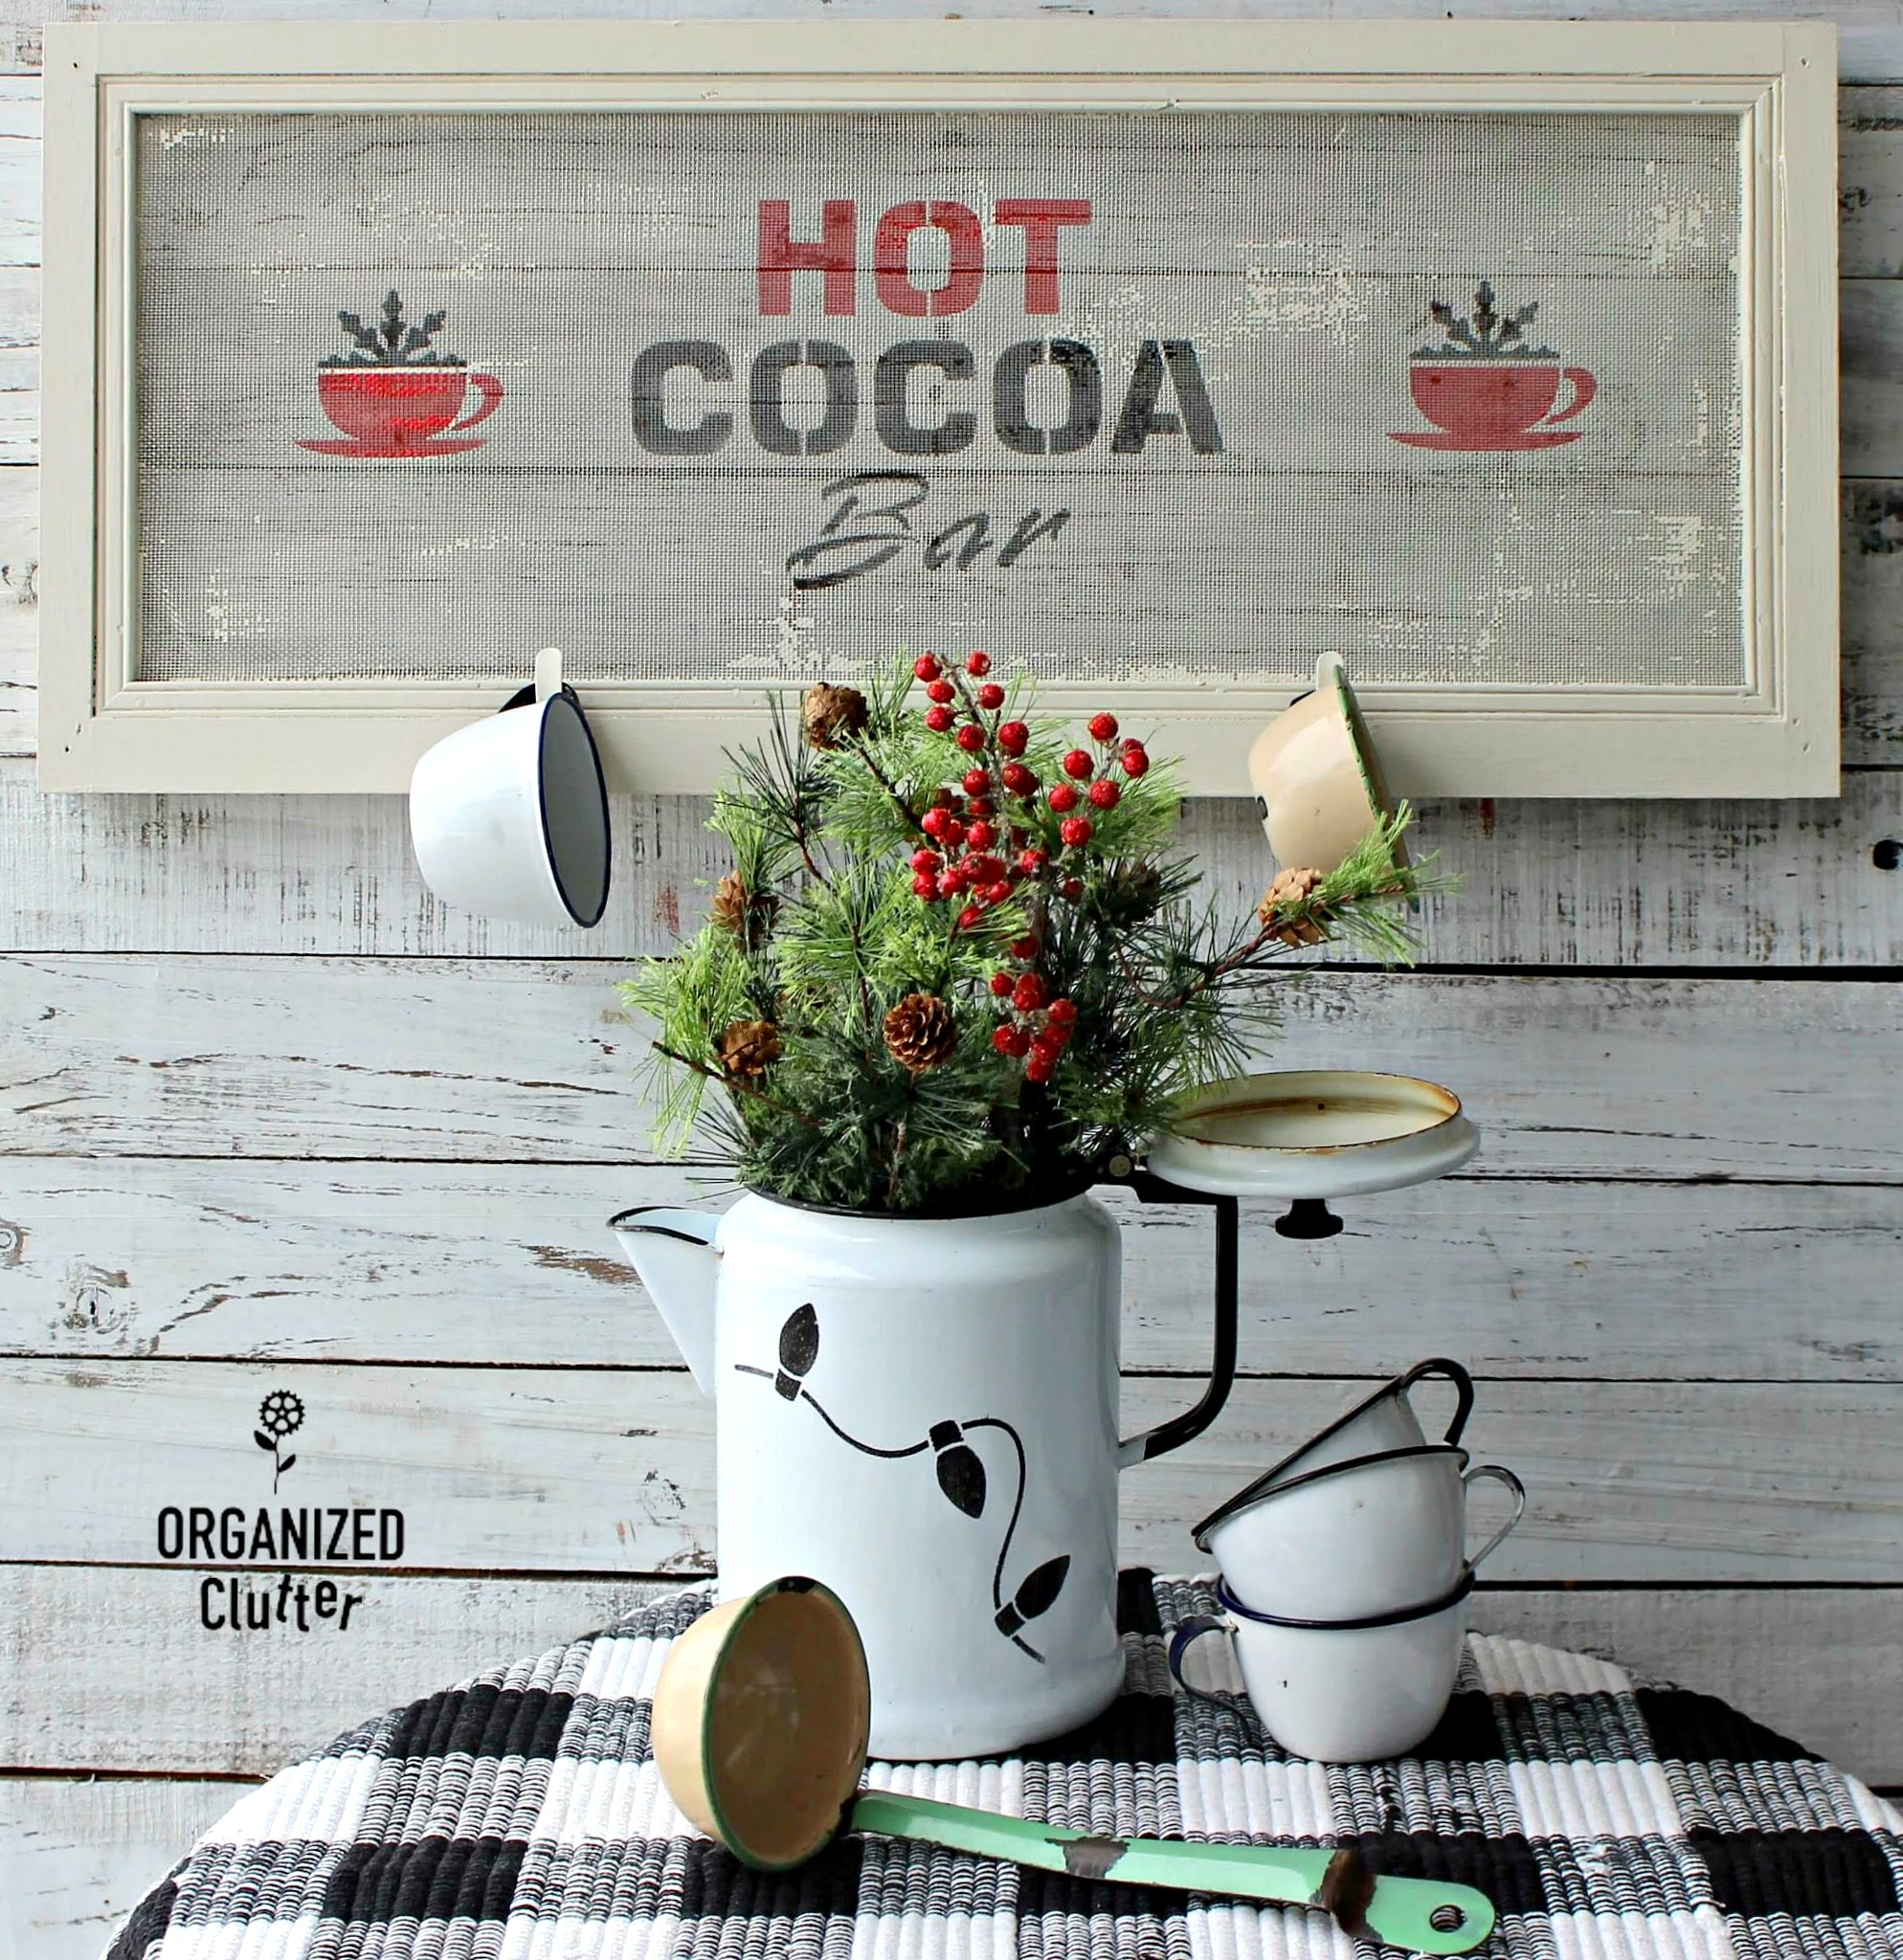 Window screen Hot Cocoa sign by Organized Clutter, featured on DIY Salvaged Junk Projects 559 on Funky Junk!